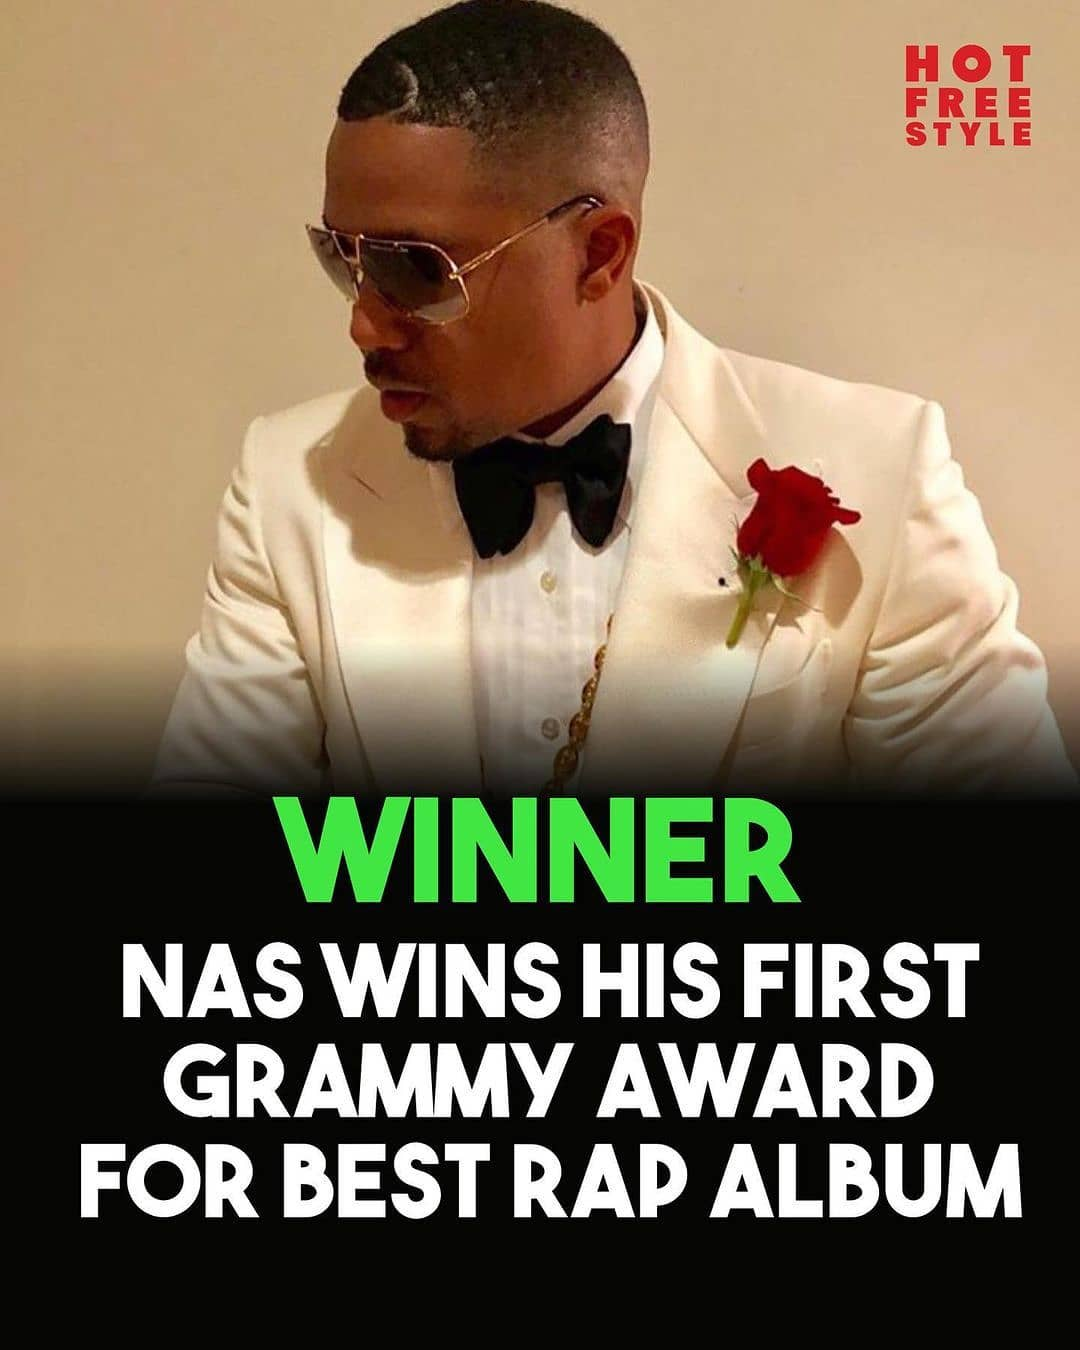 Congrats to Nas on winning his first Grammy for Best Rap Album!